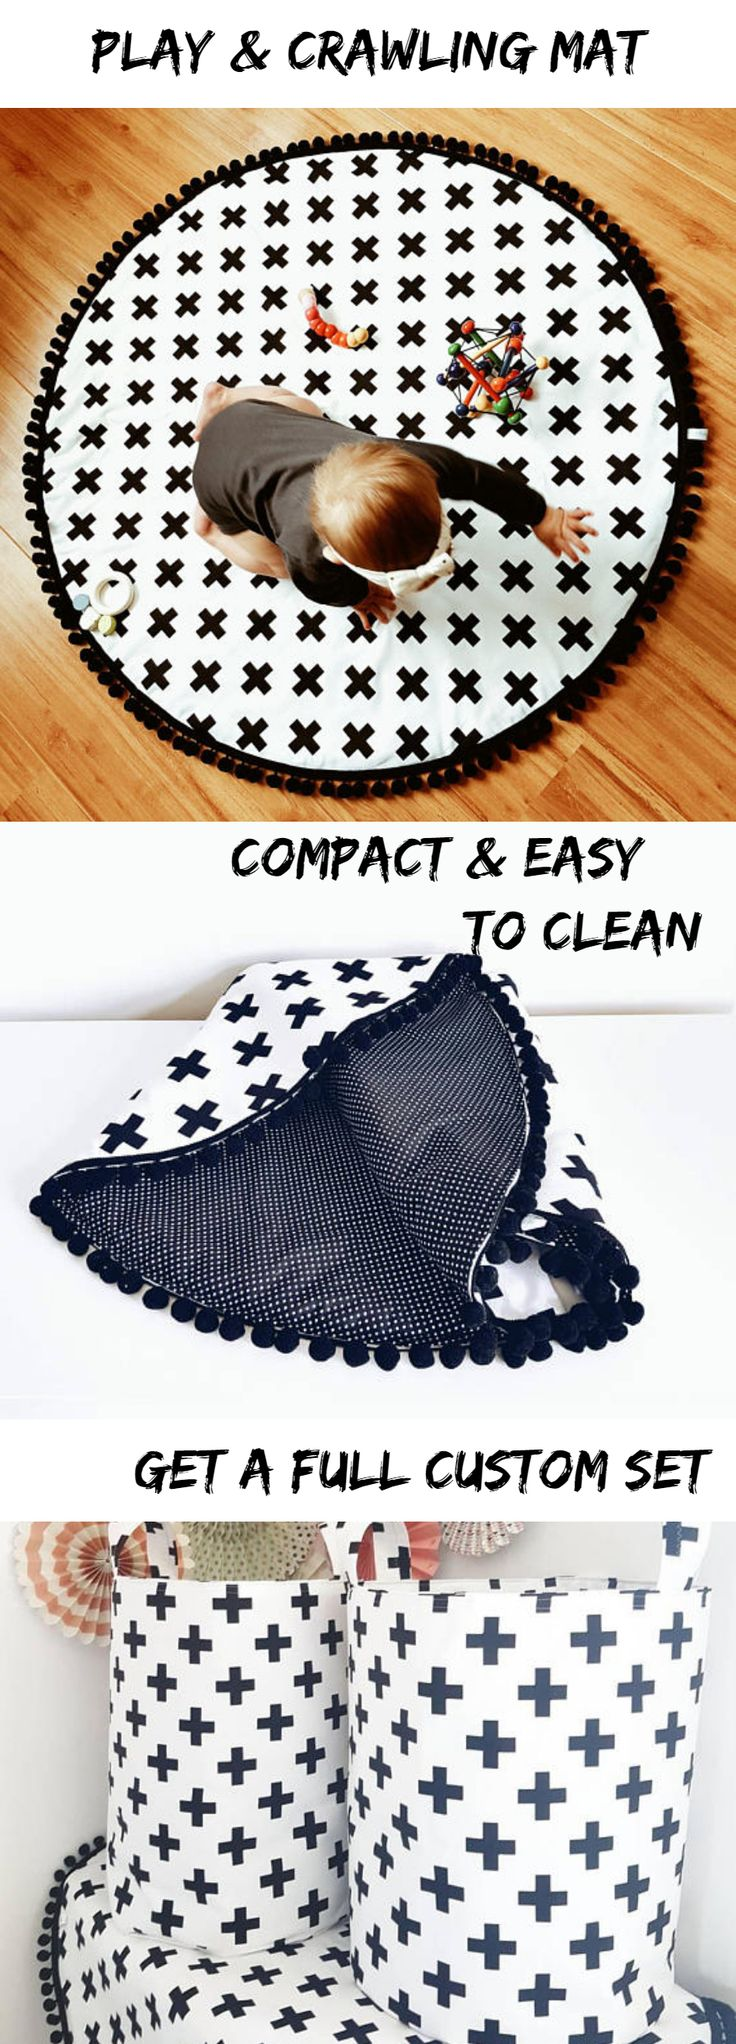 """A statement piece in modern nursery. Monochrome print playmat. Black and white swiss cross. On a reverse side small white dots on black. With a """"must have"""" black pom poms around the edges.Baby playmat can be also used as a rug in kids room. #kidsroom #play #playmat #crawling #nurserydecor #ad"""